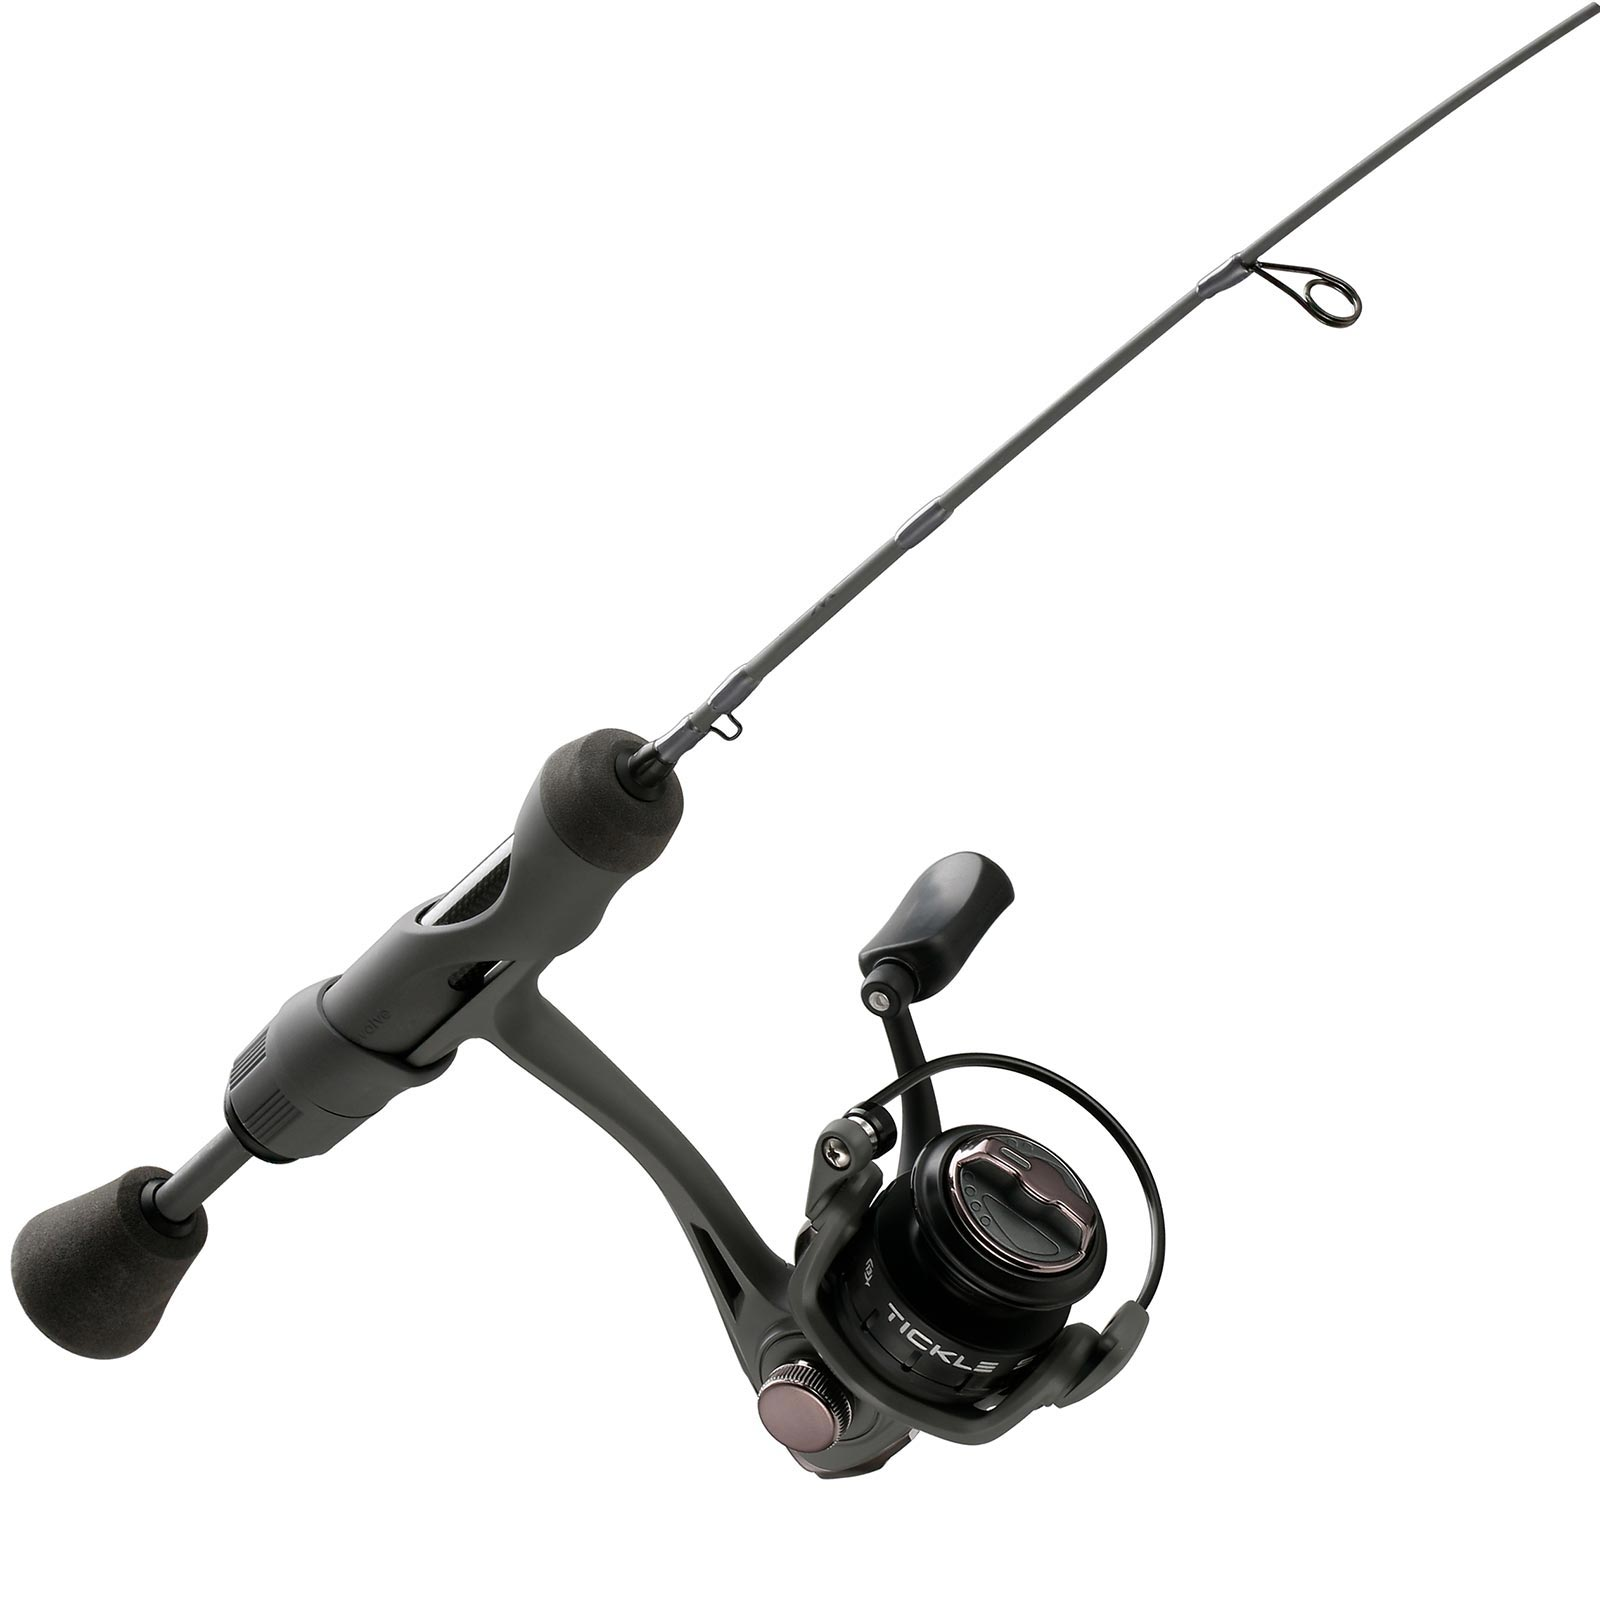 13 Fishing Wicked Stealth Edition Ice Spinning Combo Handle